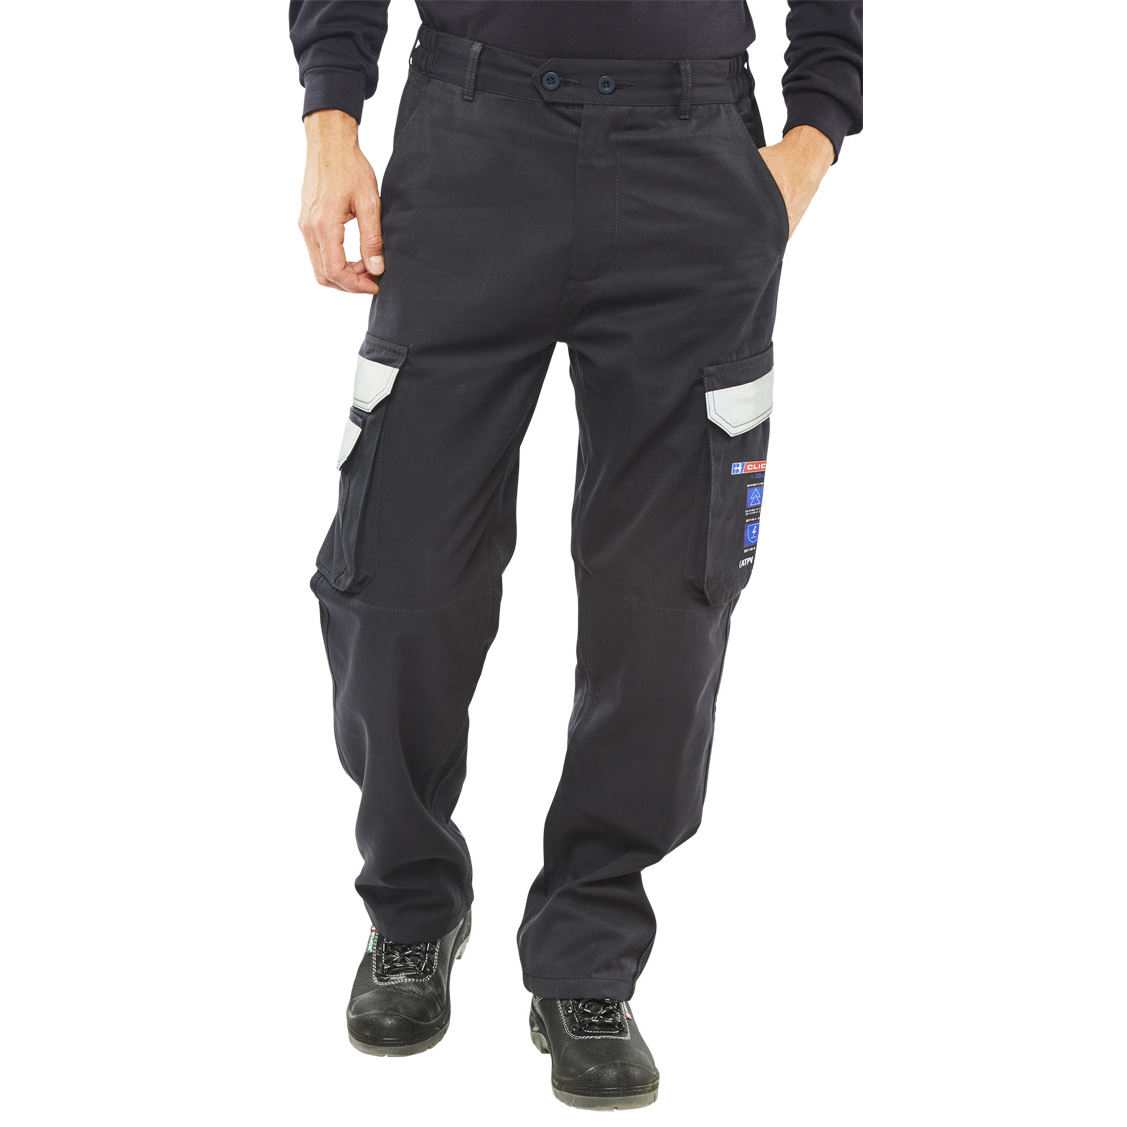 Fire Retardant / Flame Resistant Click Arc Flash Trousers Fire Retardant Navy Blue 48-Tall Ref CARC4N48T *Up to 3 Day Leadtime*